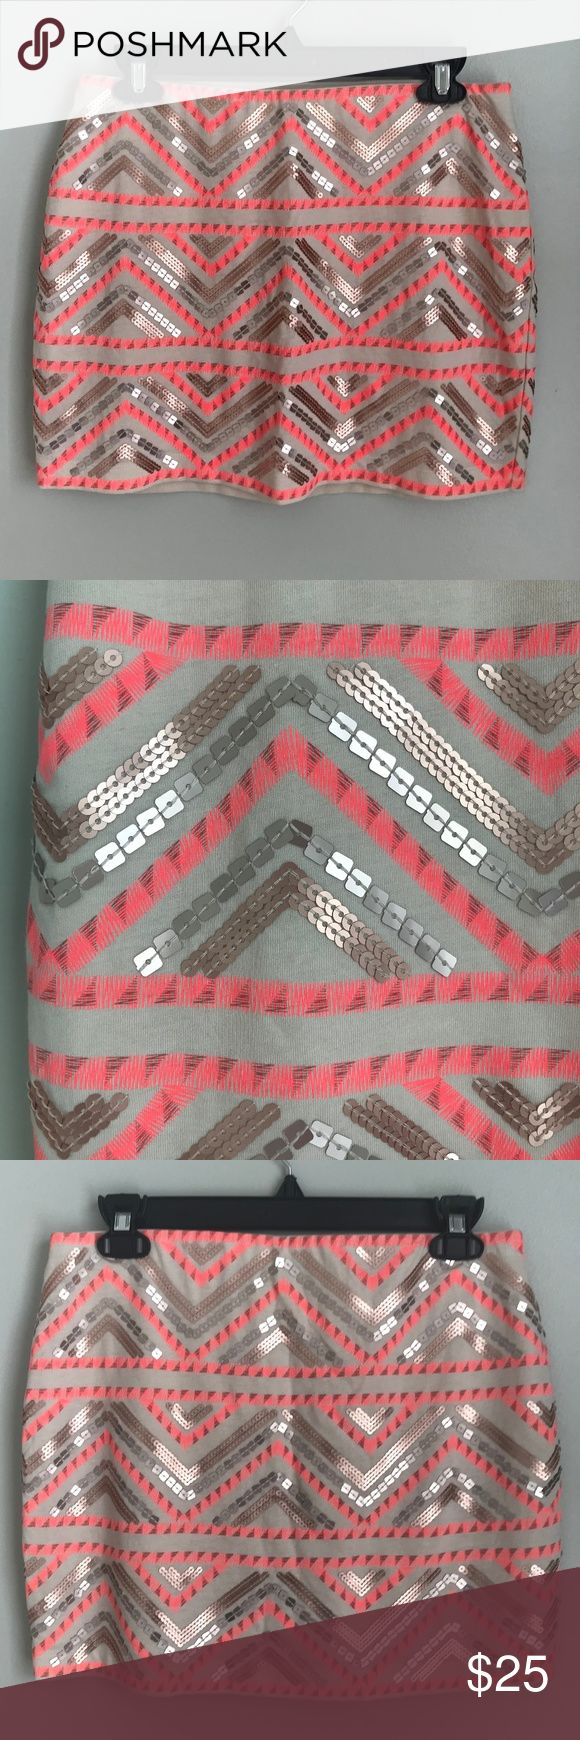 """Express Factory Ivory Pink Chevron Sequin Skirt Express Factory Ivory Pink Sequin Stretch Mini Skirt Aztec Chevron NWT Size Small  waist measures 29""""  length measures 14""""  (Inventory Bin DD - C) Express Skirts Mini"""